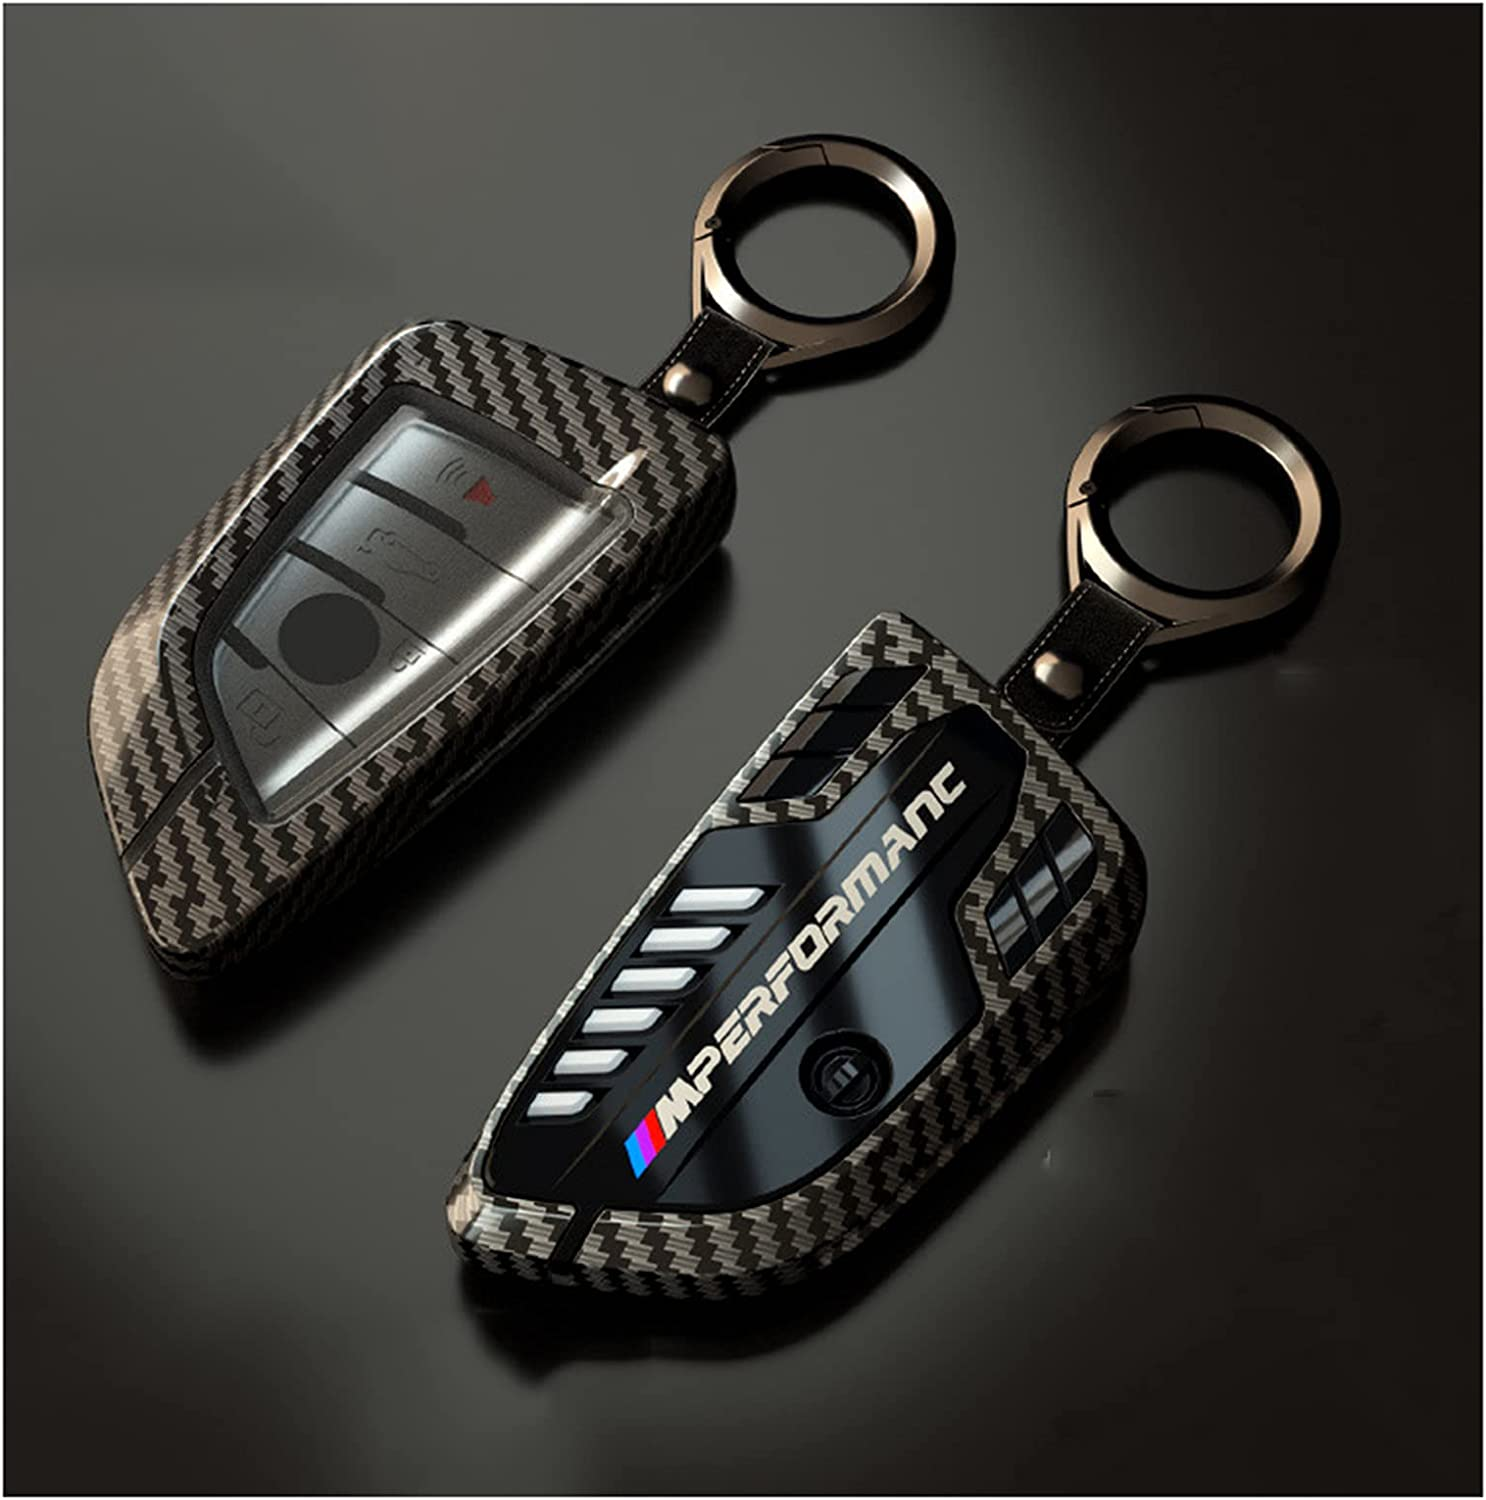 Rapid rise Max 71% OFF N B Alloy Car Key Case Cover Head Holder Engine Classic Rings